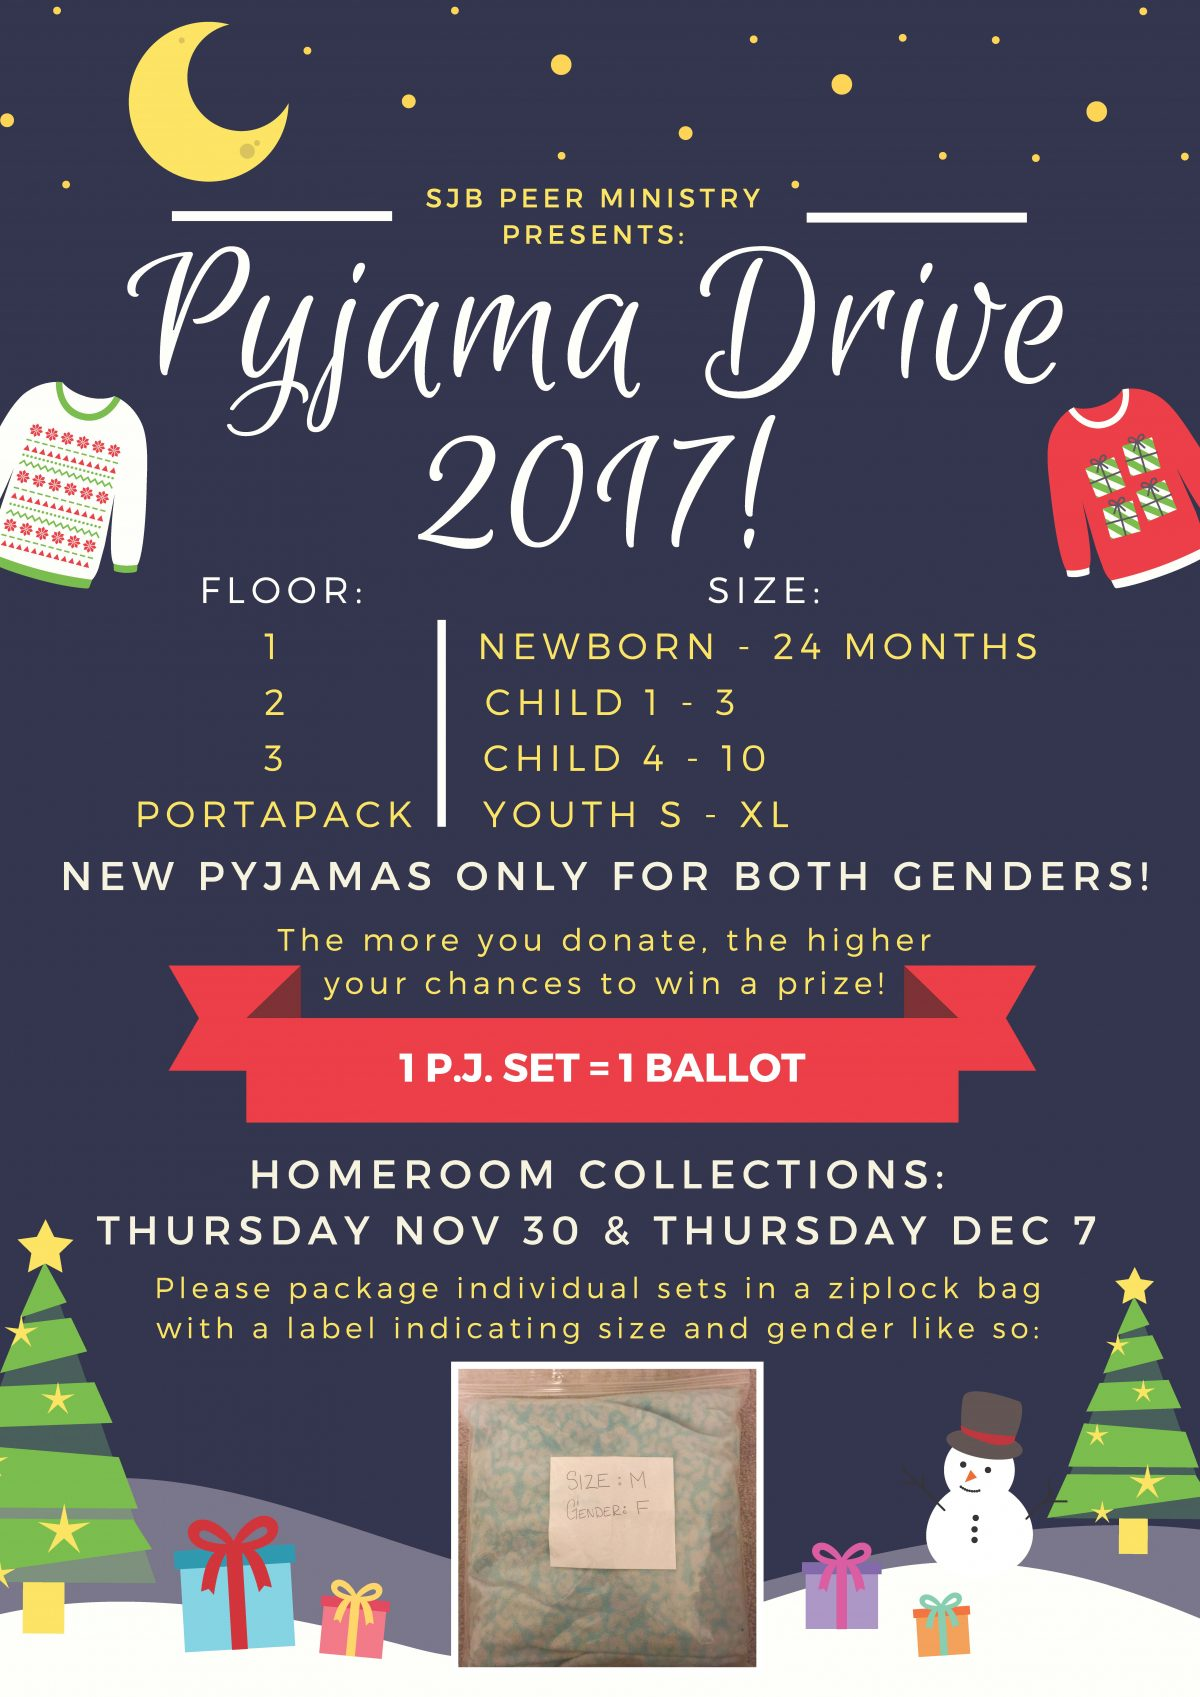 Peer Ministry kicking off the 2017 Pyjama Drive